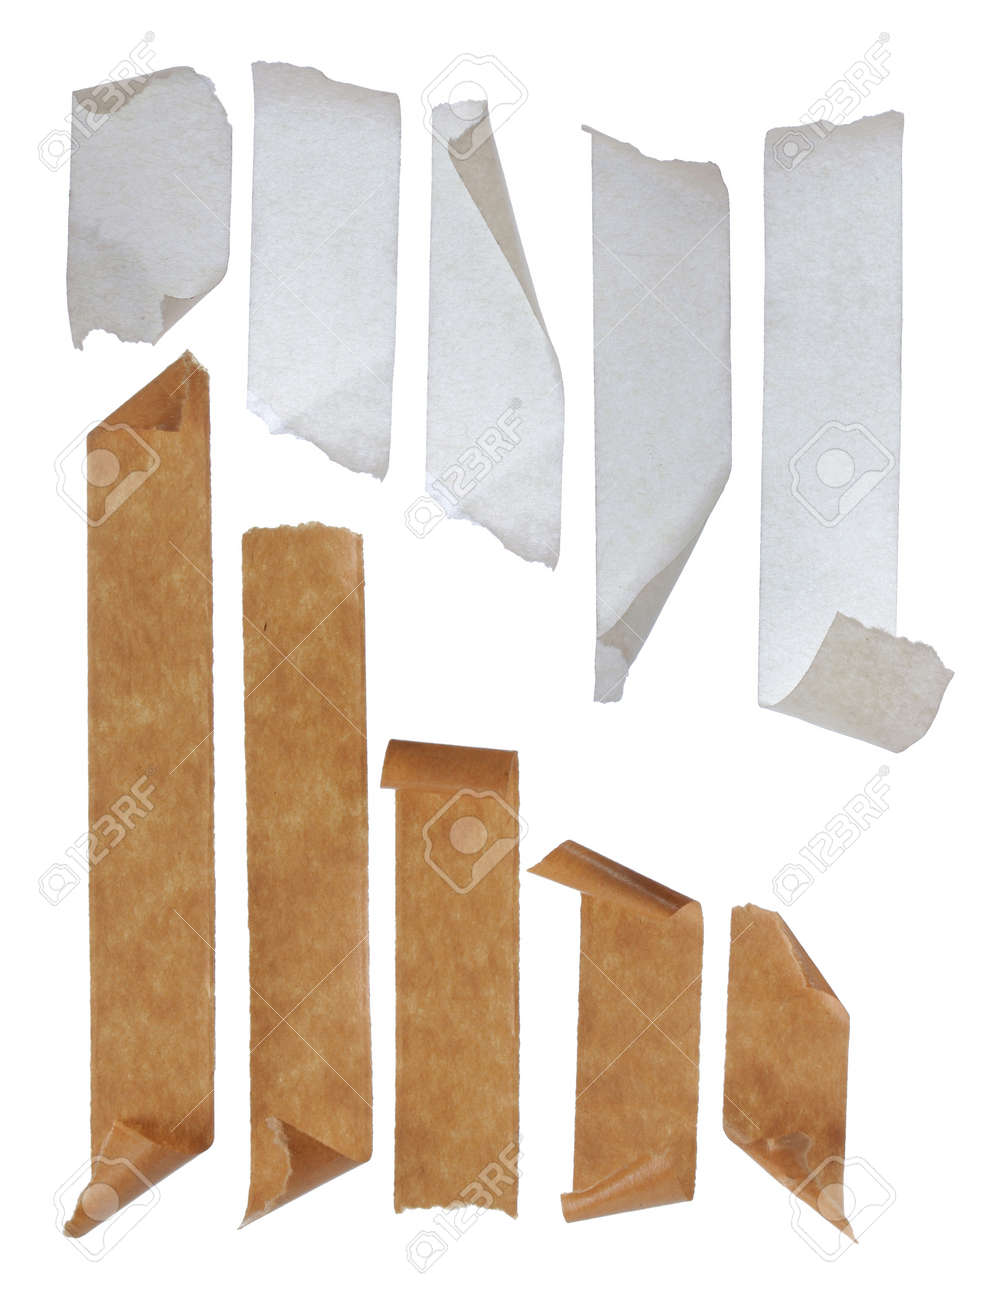 brown and white Strips of masking tape. Isolated on white background. Standard-Bild - 9607734